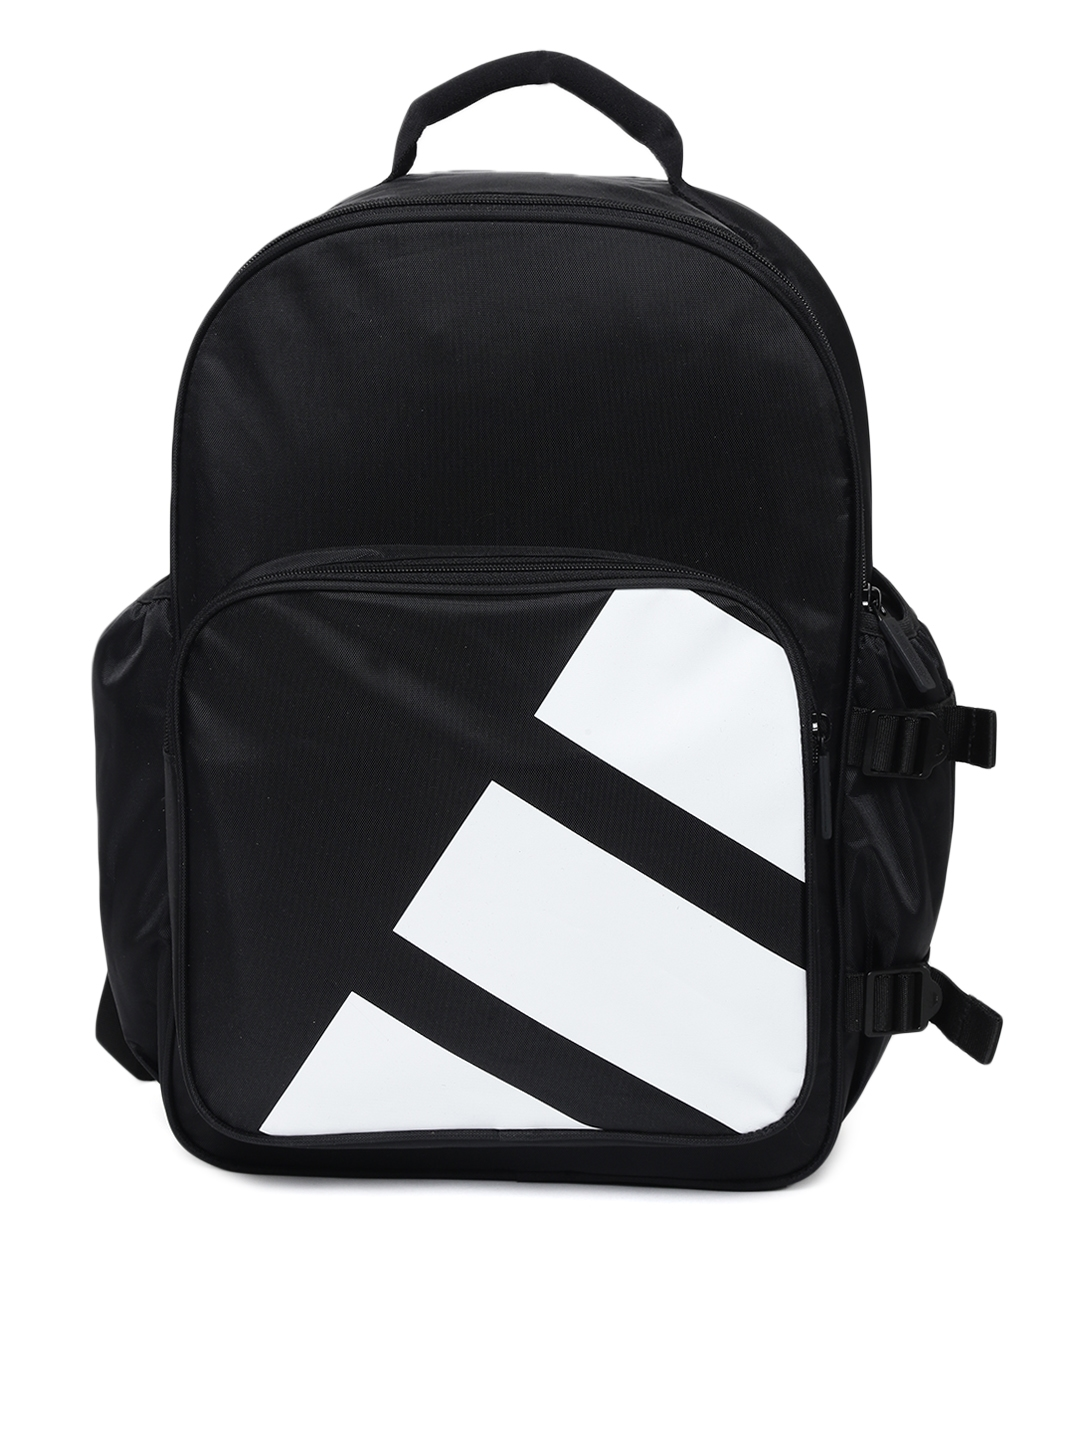 ADIDAS Originals Unisex Black   White CLAS BP EQT Printed Backpack dd85818ed4d71